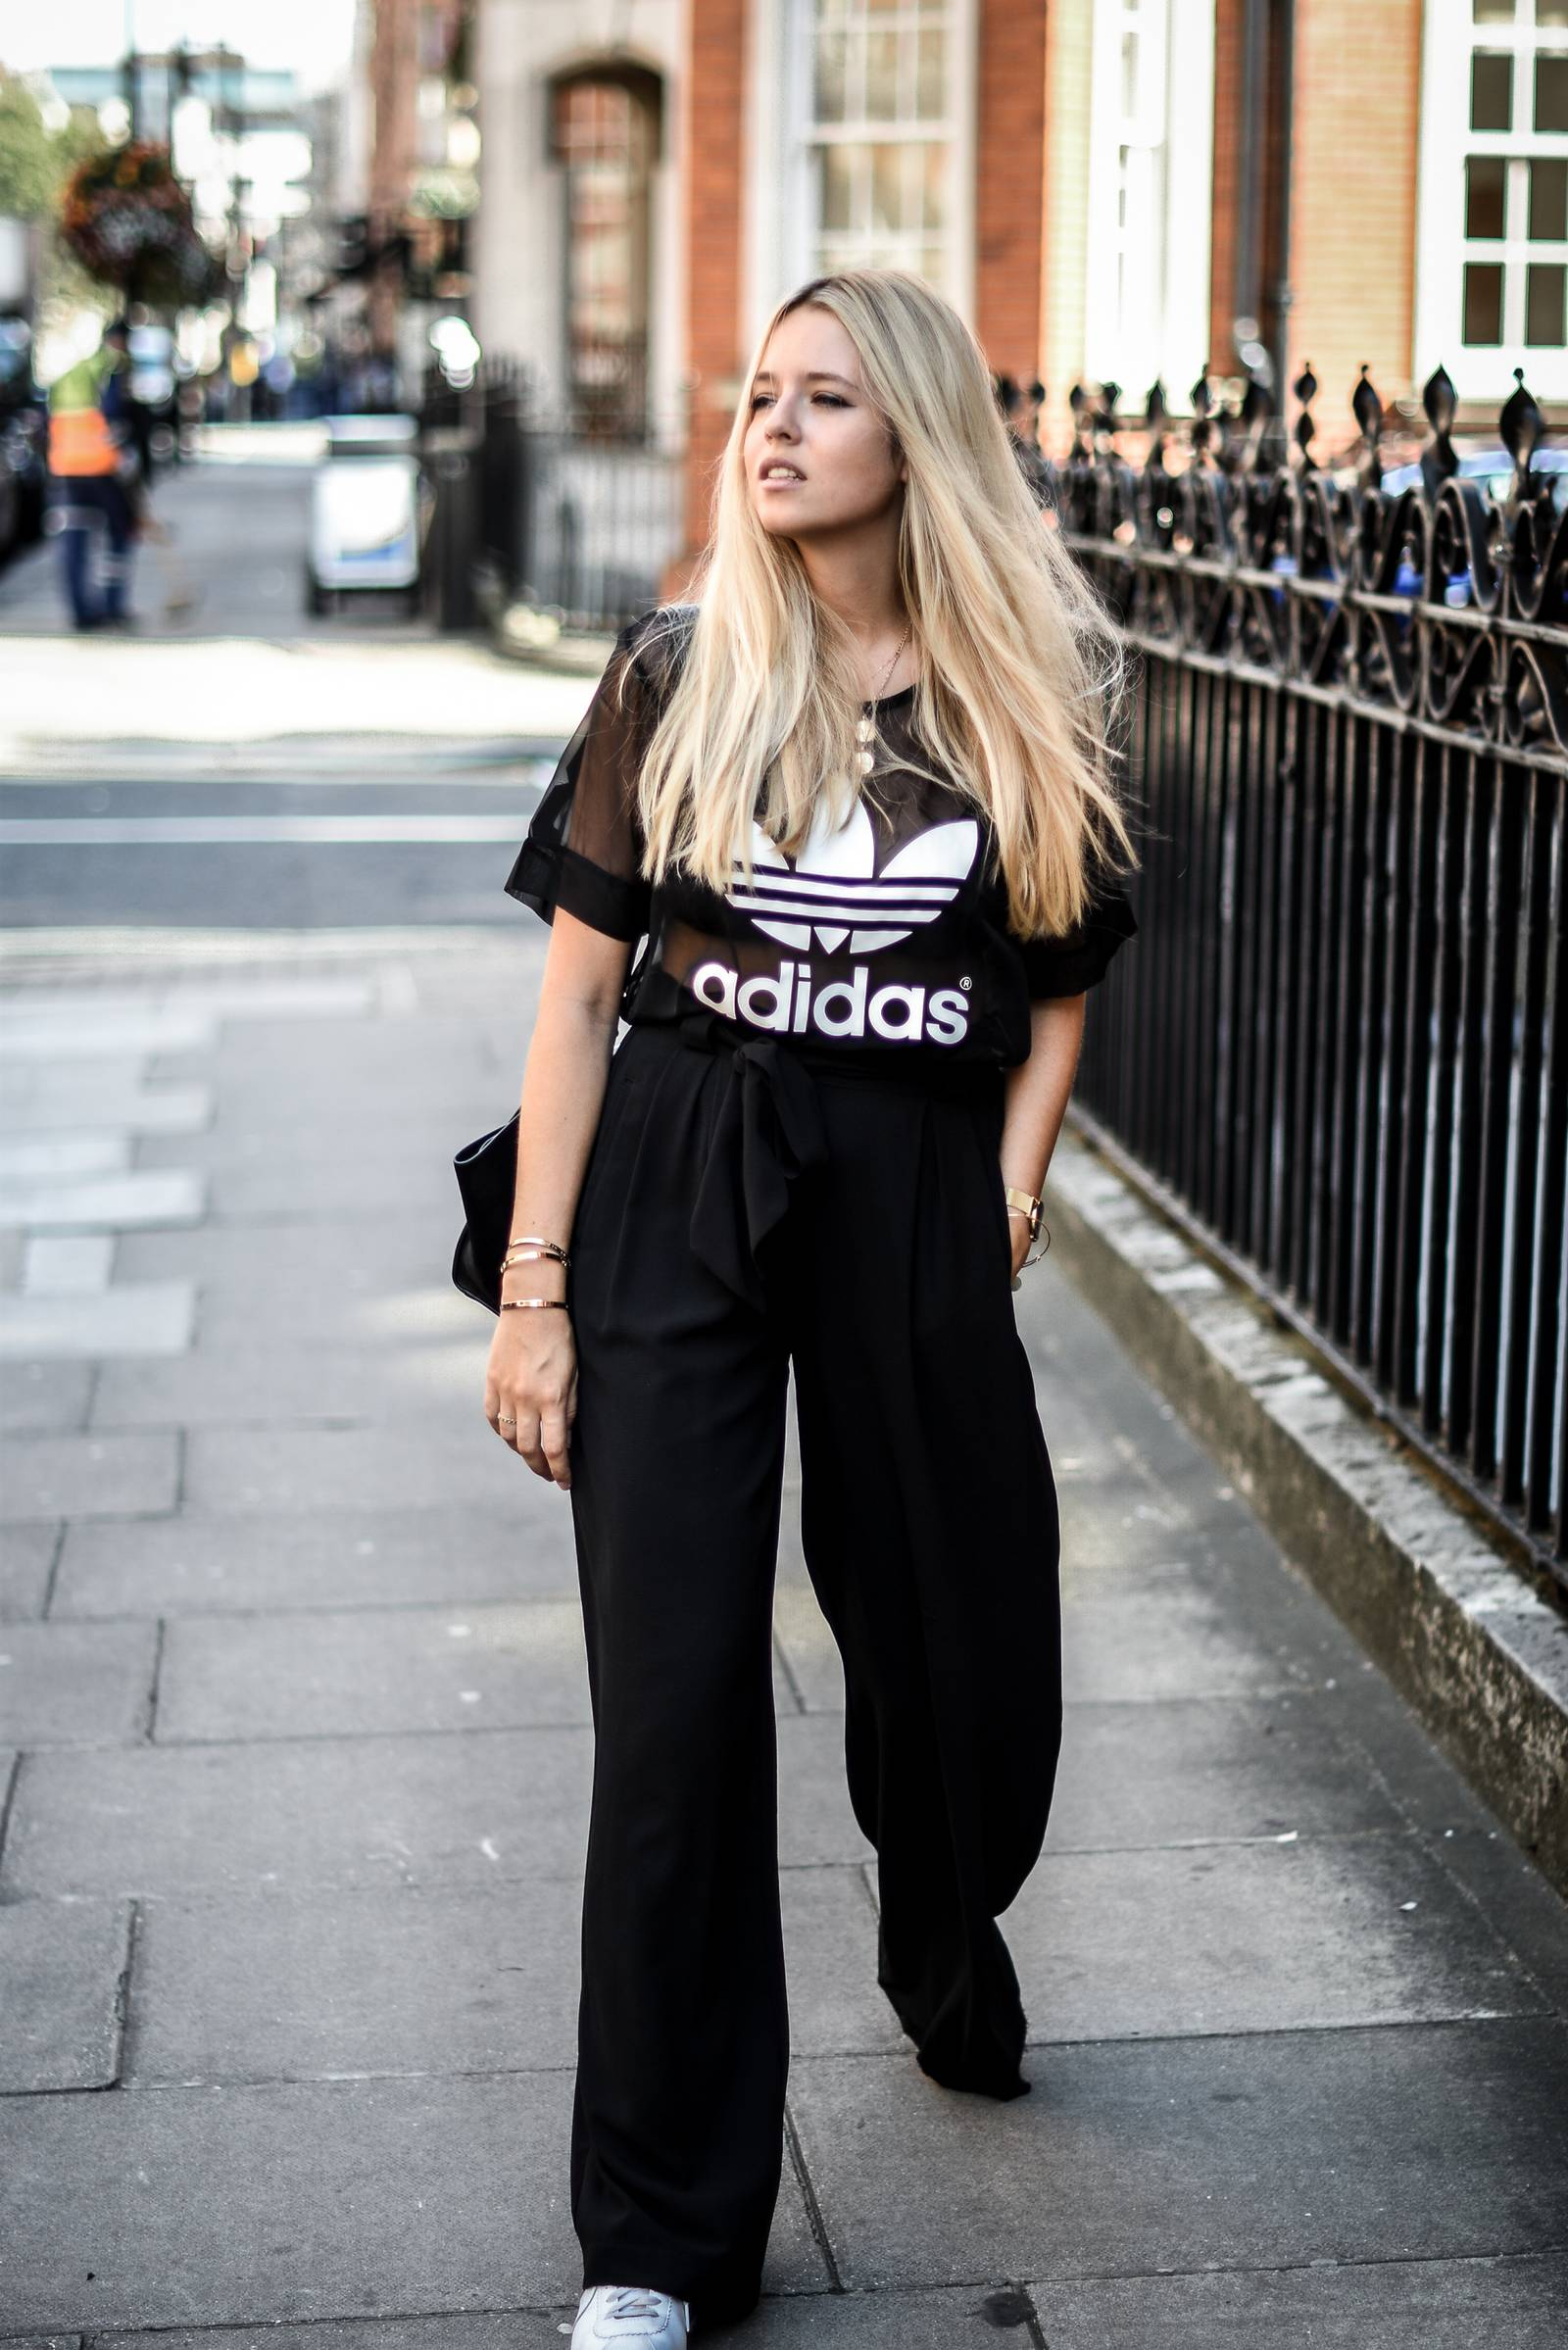 blog-mode-london-outfit-13